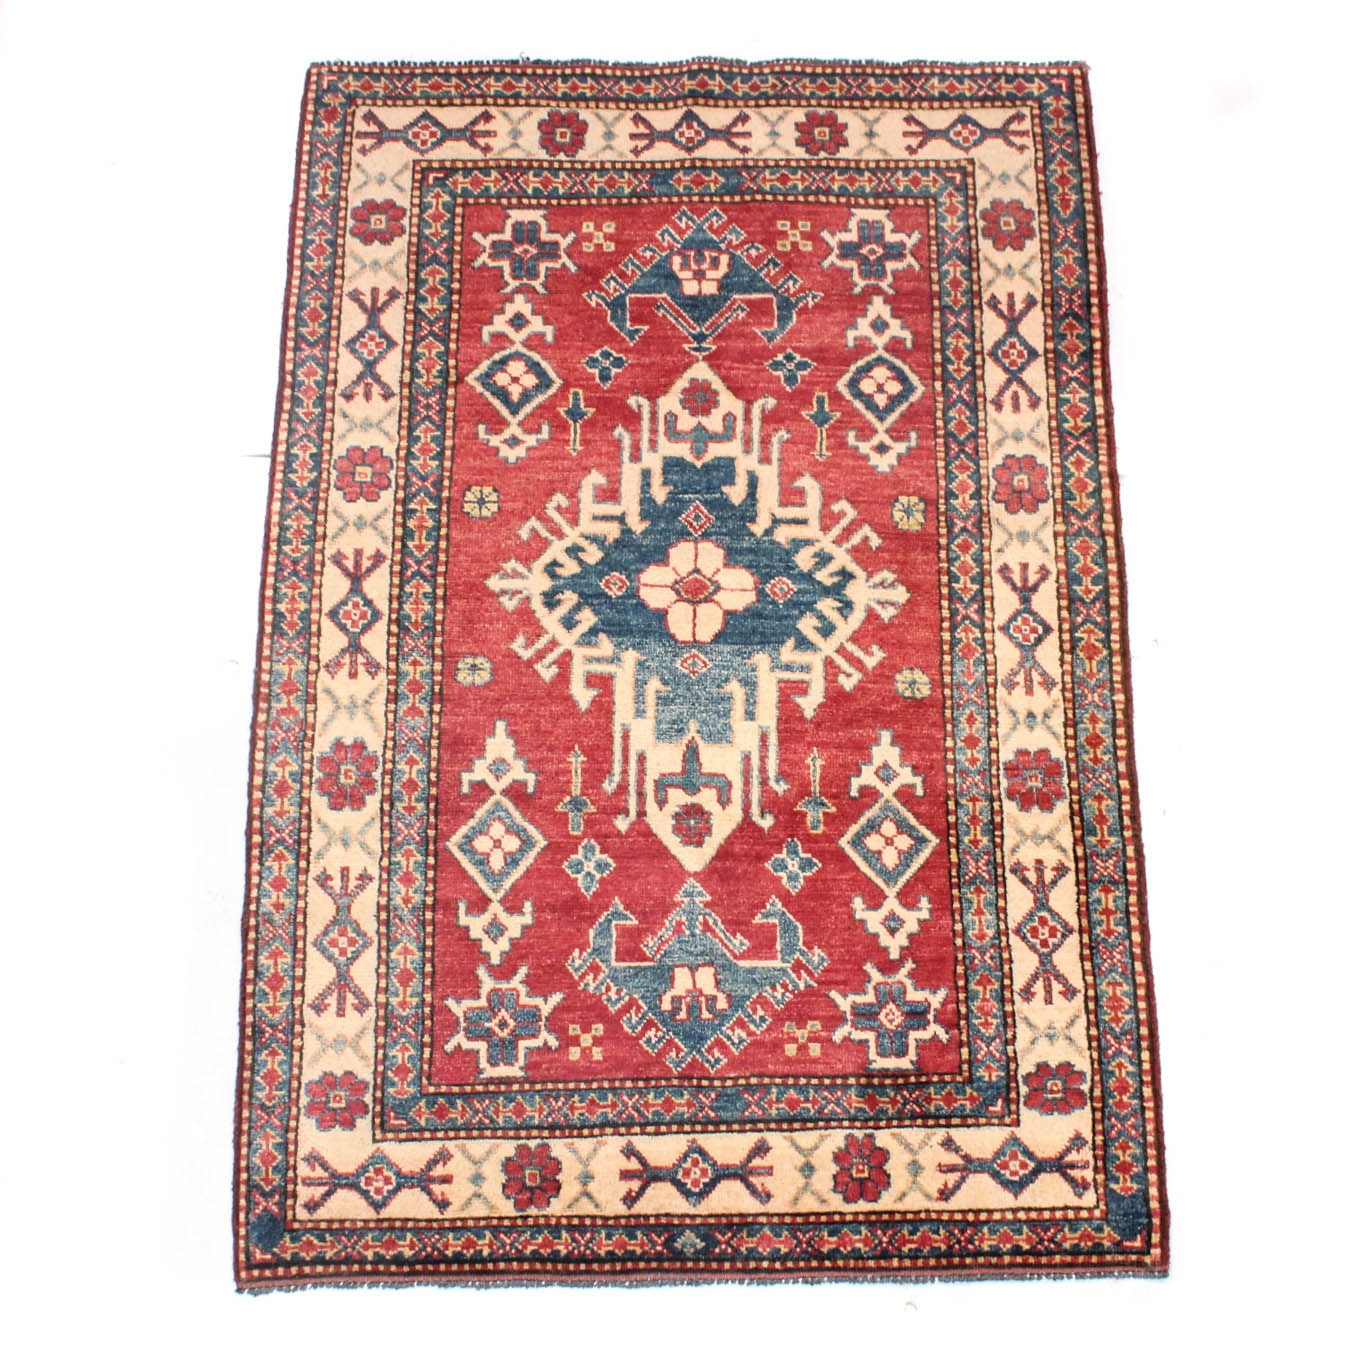 3' x 5' Fine Hand-Knotted Afghani Caucasian Kazak Rug